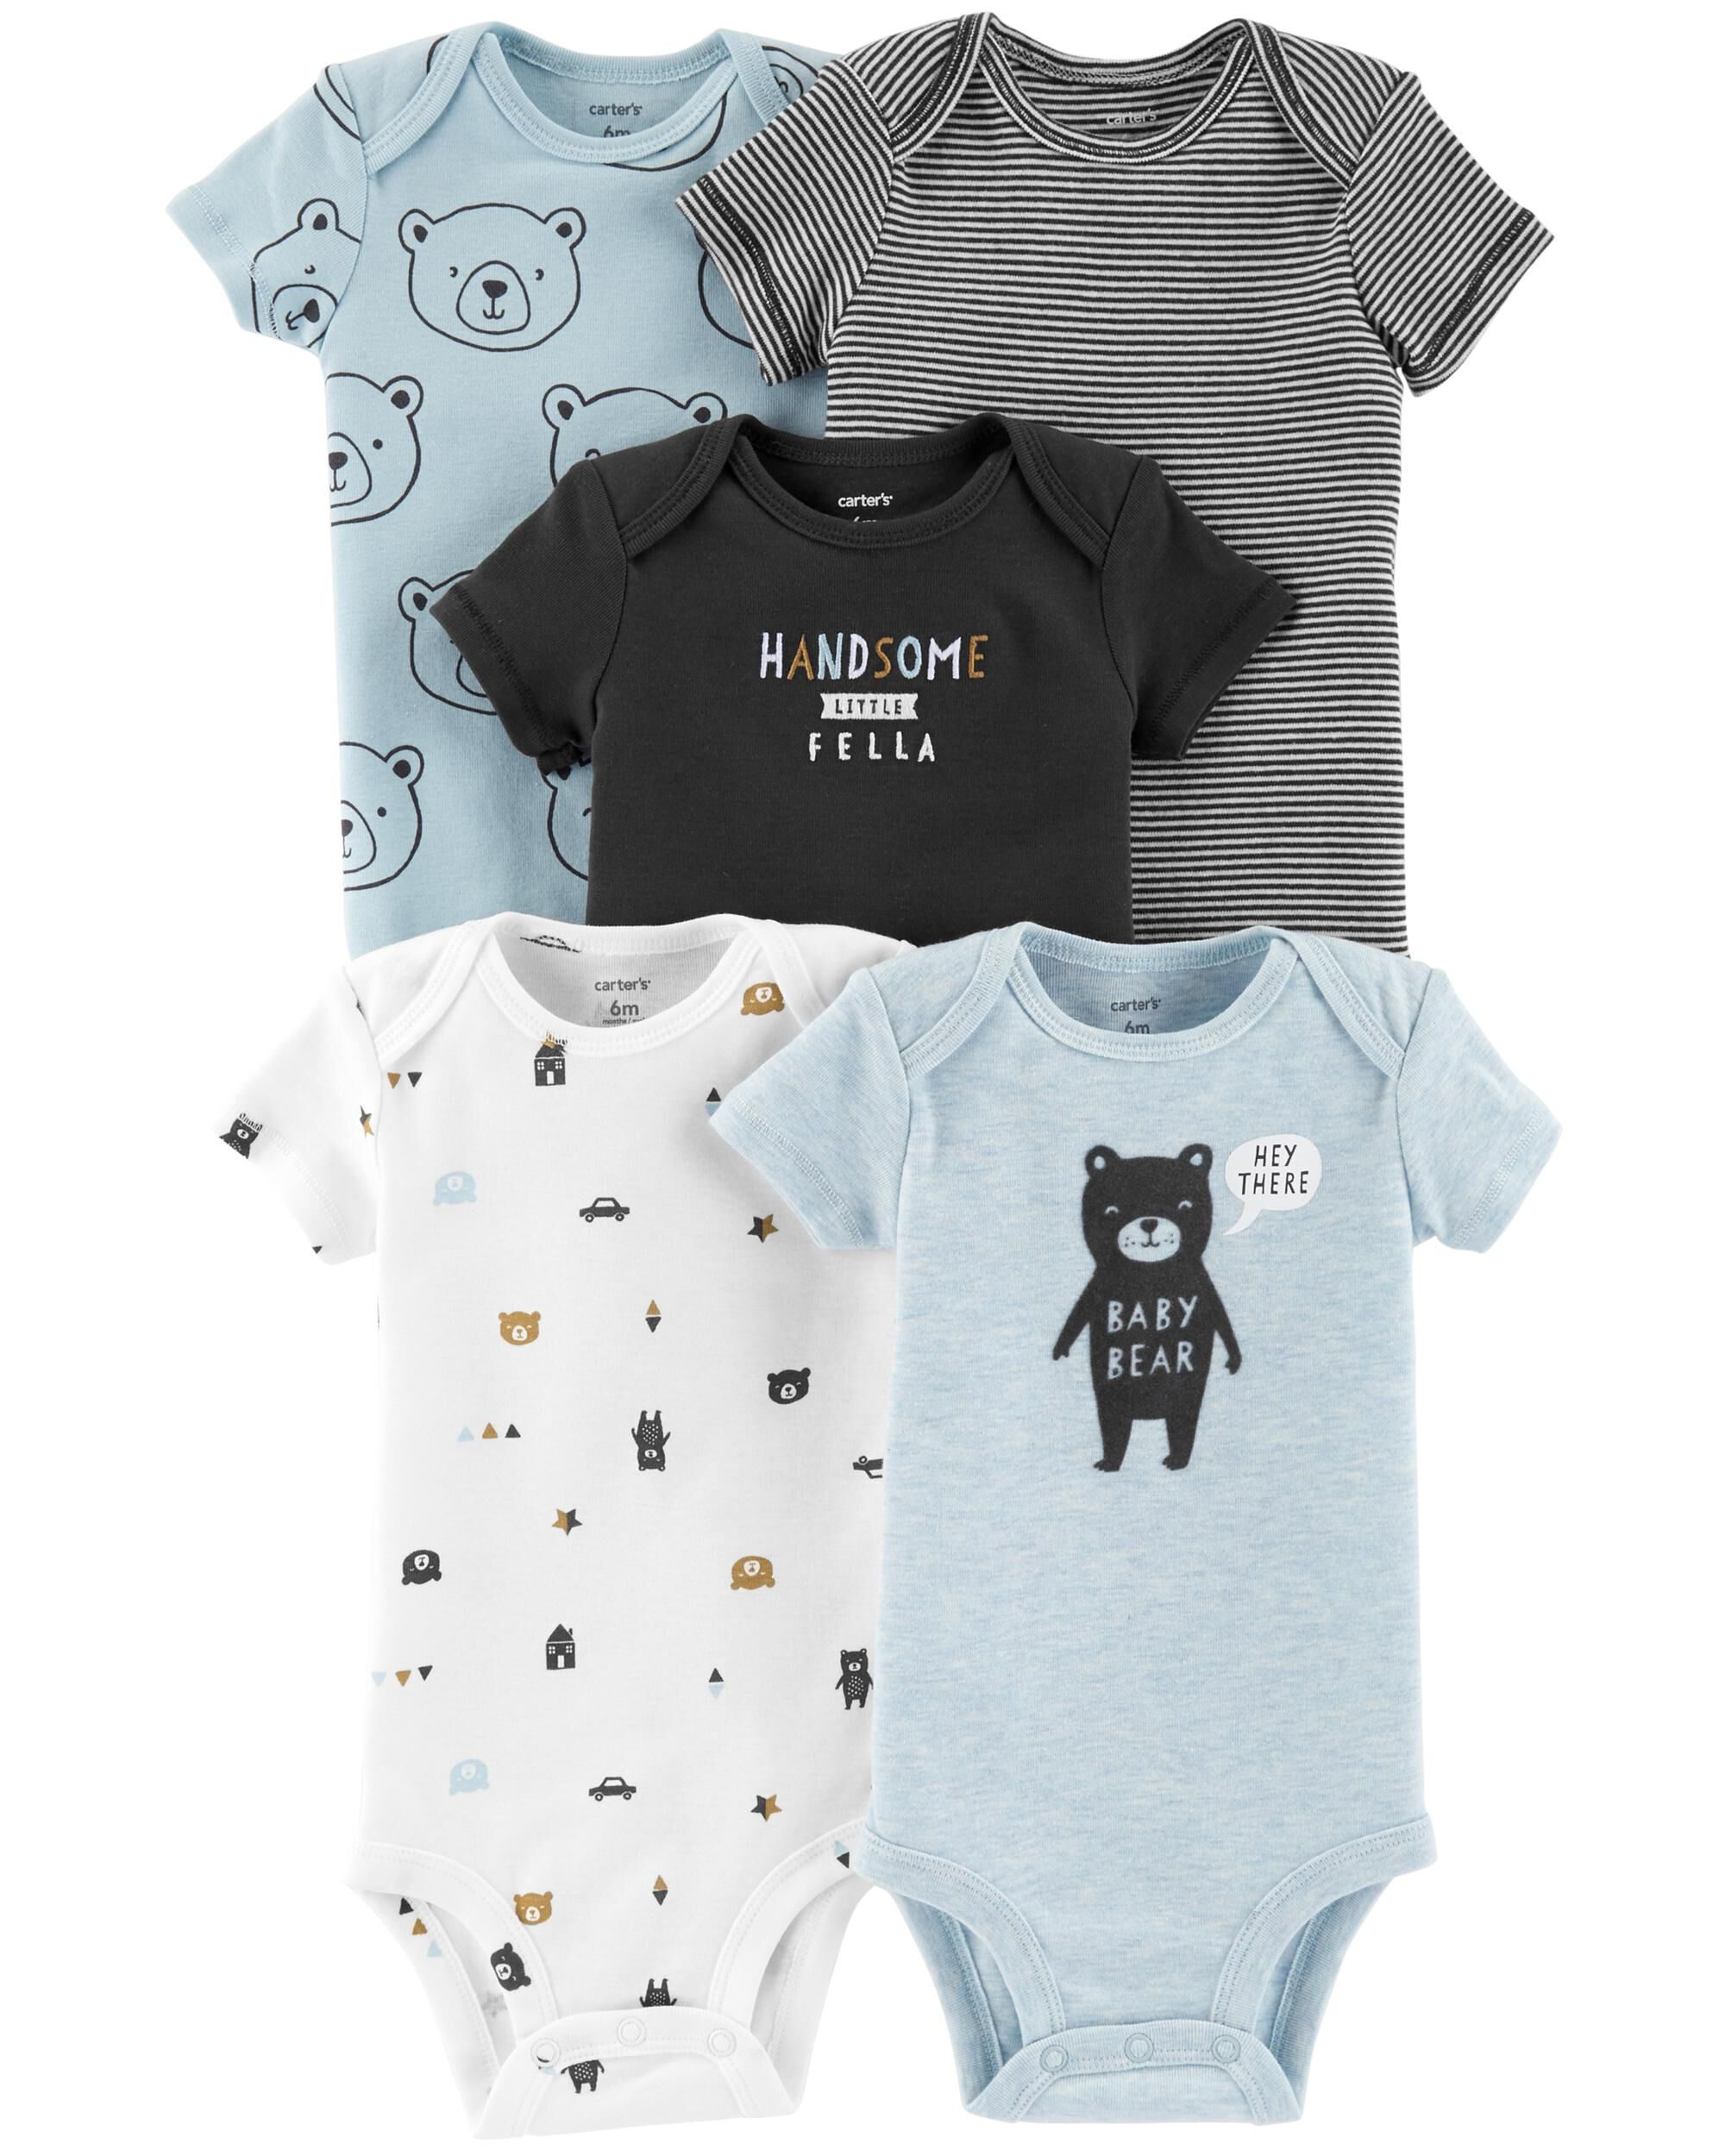 45cee83b3 5-Pack Bear Original Bodysuits | Carters.com